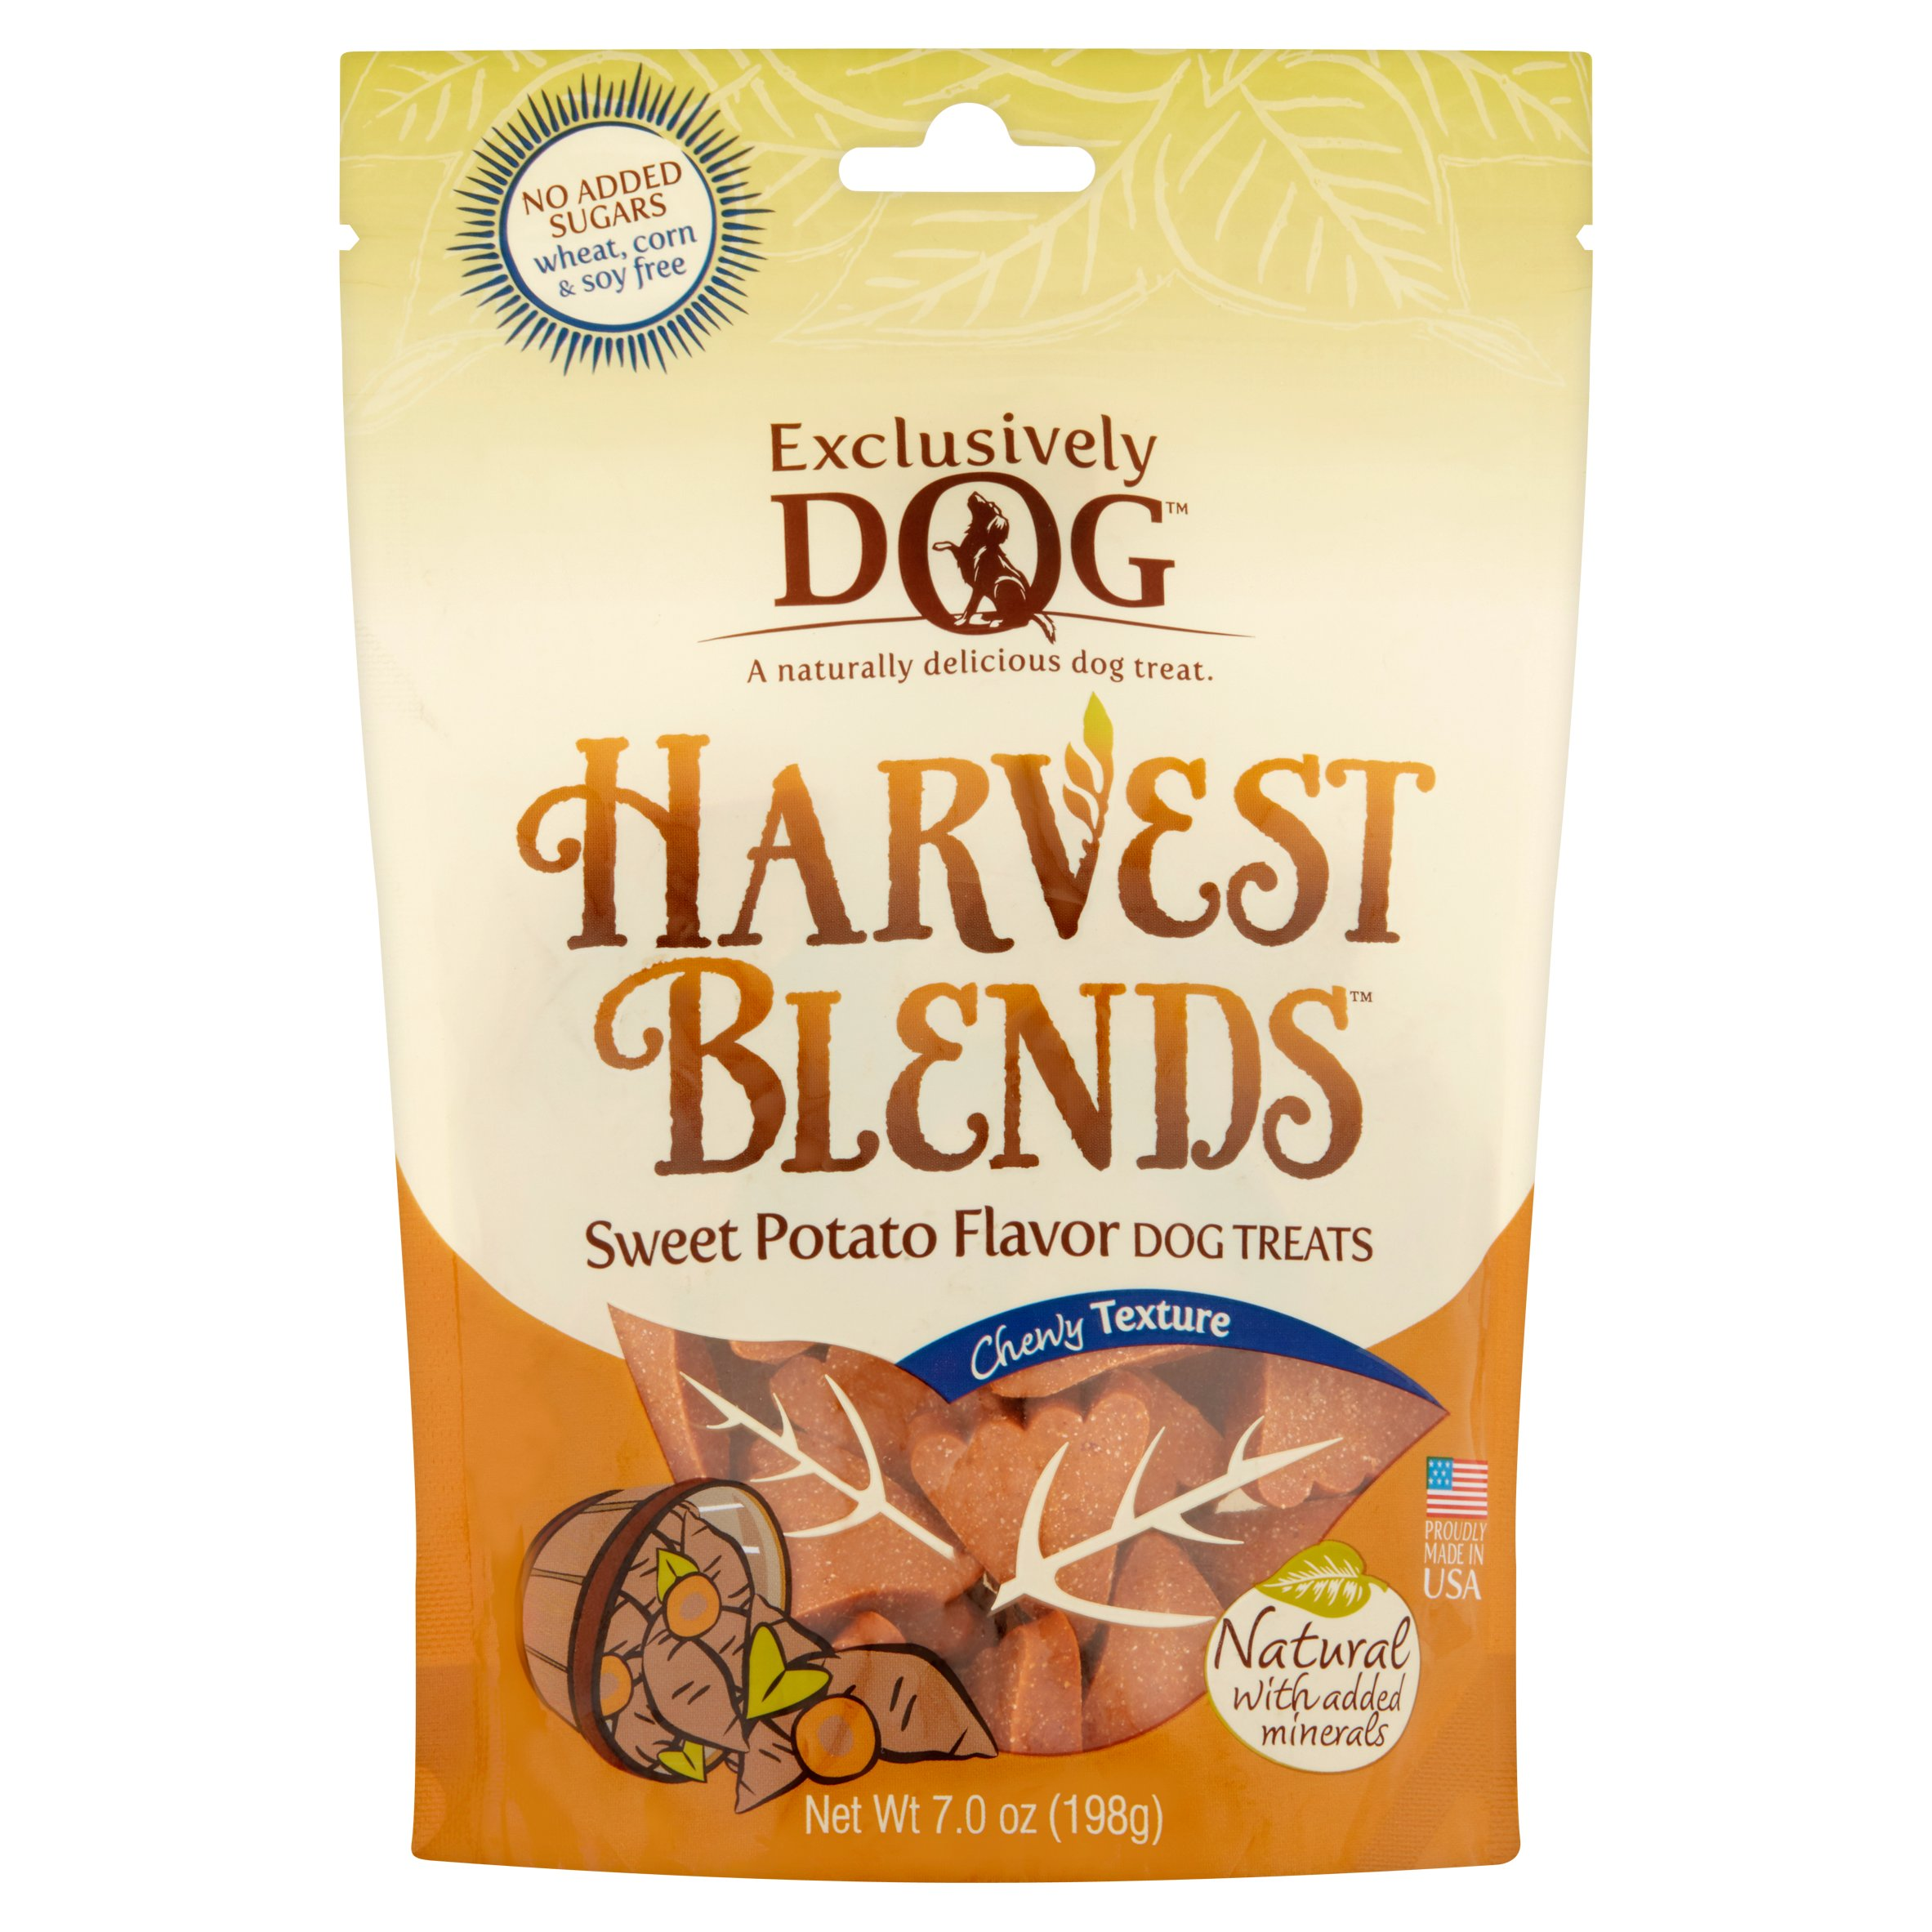 Exclusively Dog Harvest Blends Sweet Potato Flavor Dog Treats, 7.0 oz